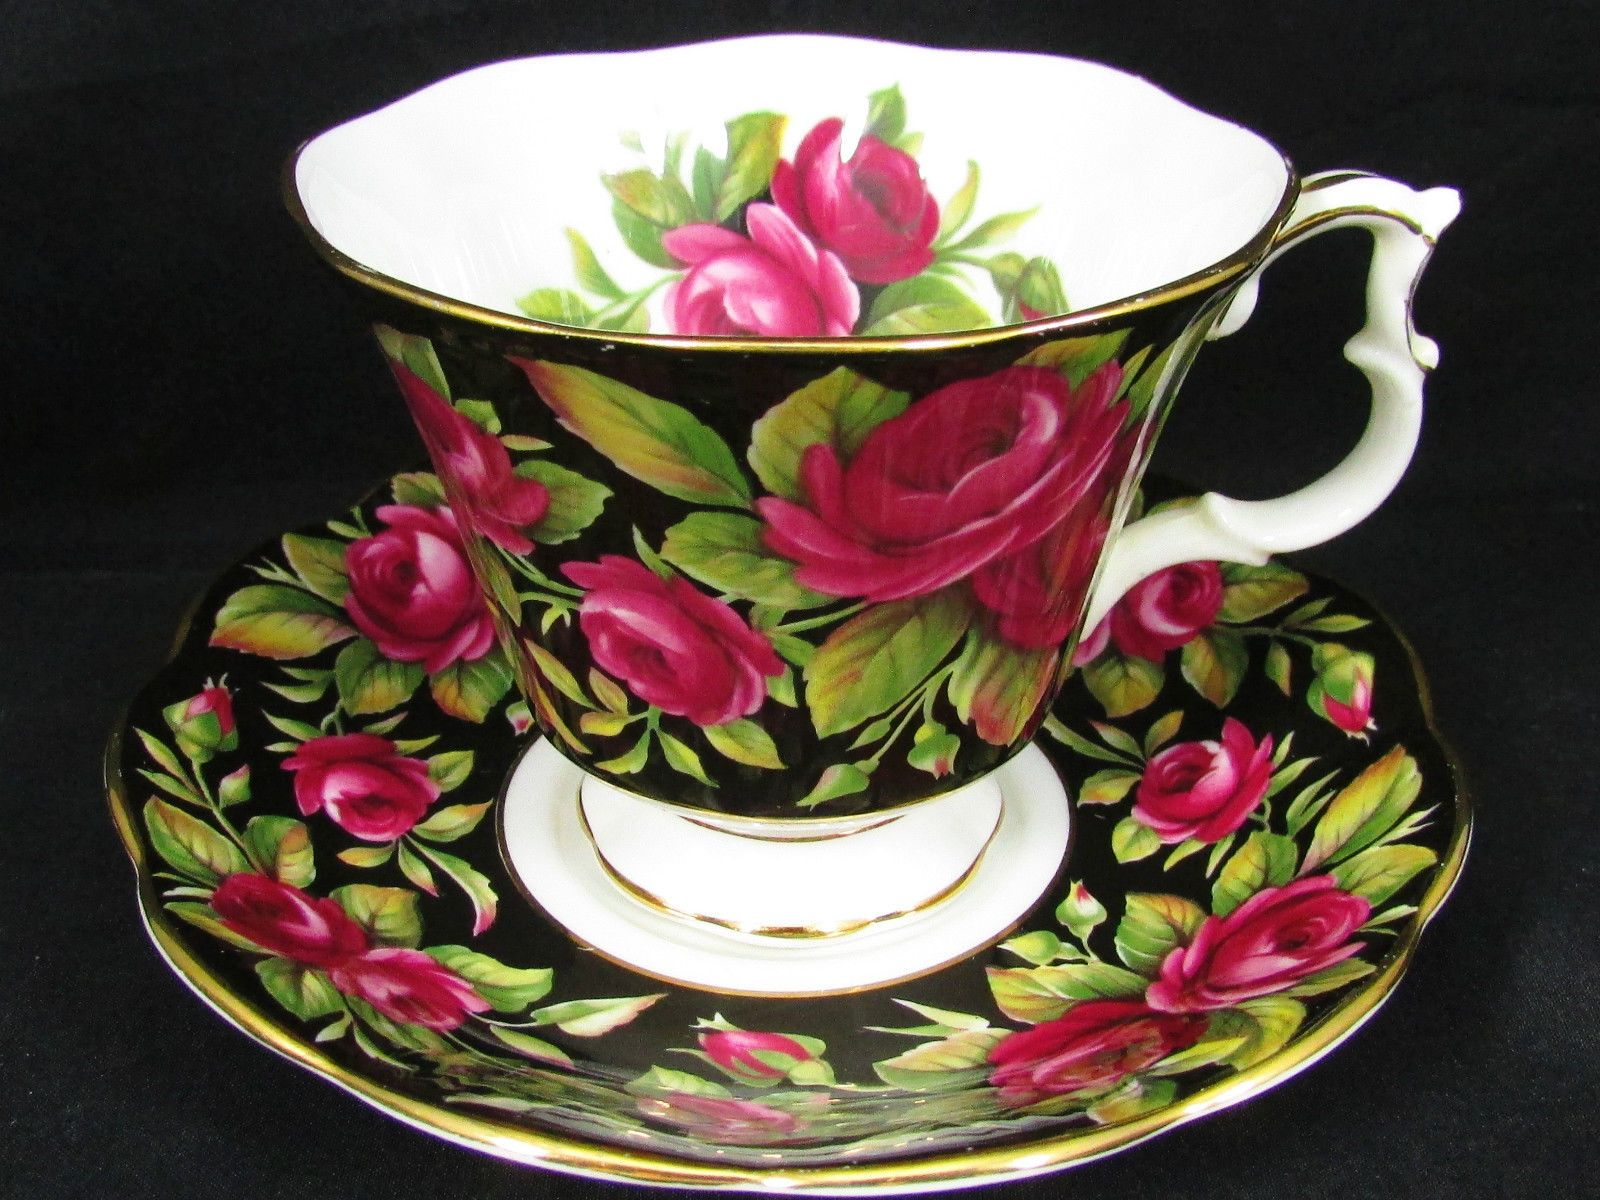 Royal Albert Crimson Glory Red Roses Chintz Tea Cup and Saucer | eBay